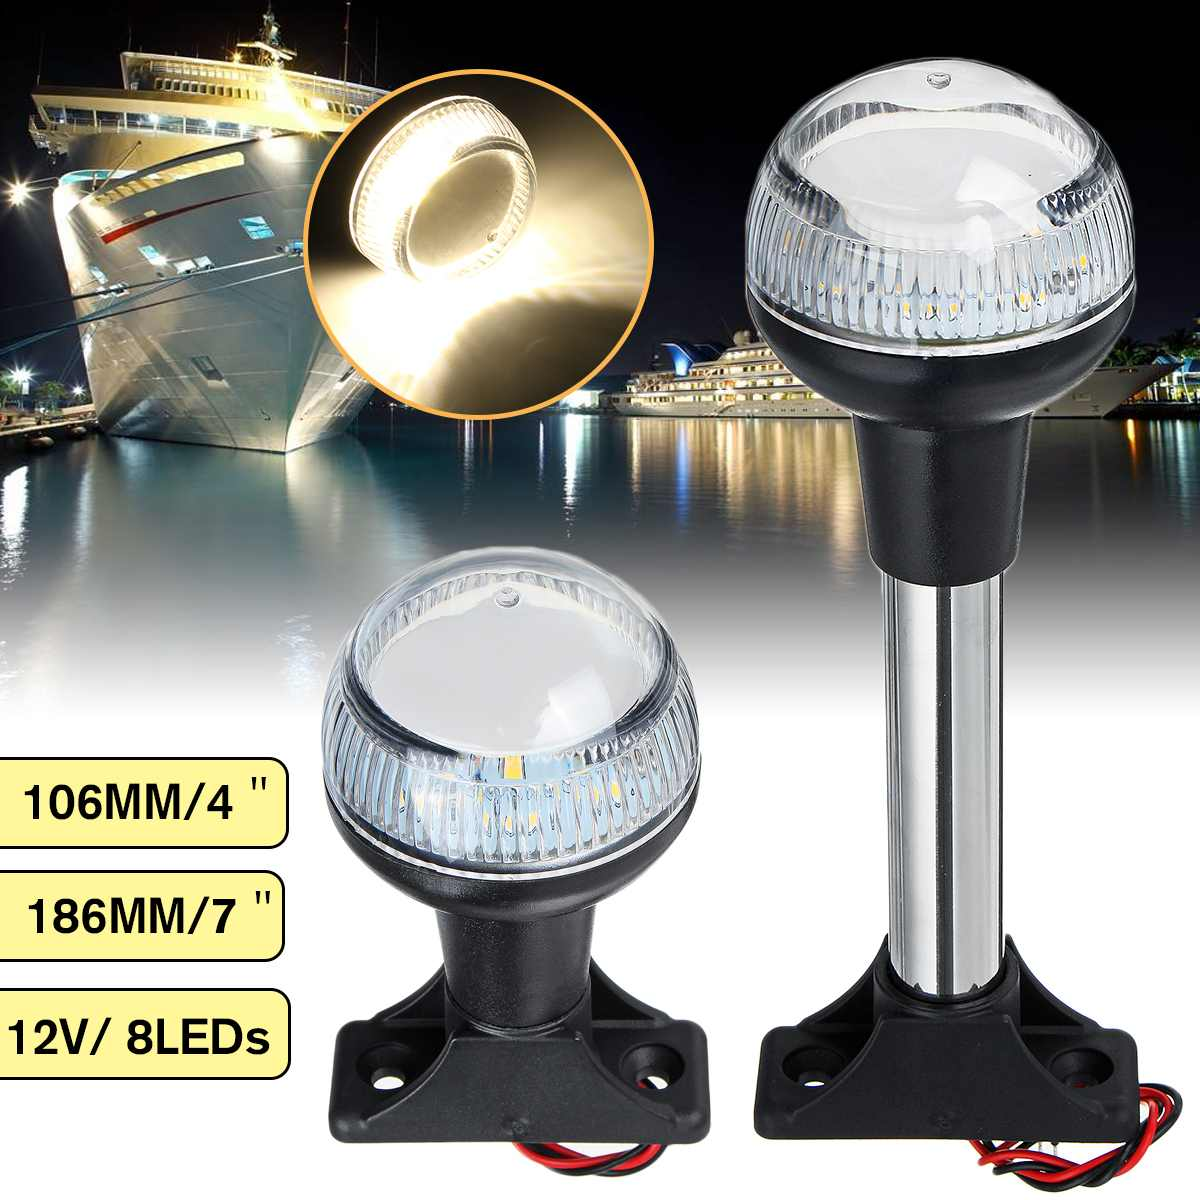 NEW 4/7 Inch LED Navigation Light Anchor Light 12V Pactrade Marine Boat Waterproof Sailing Signal Light For Yacht Boat Stern